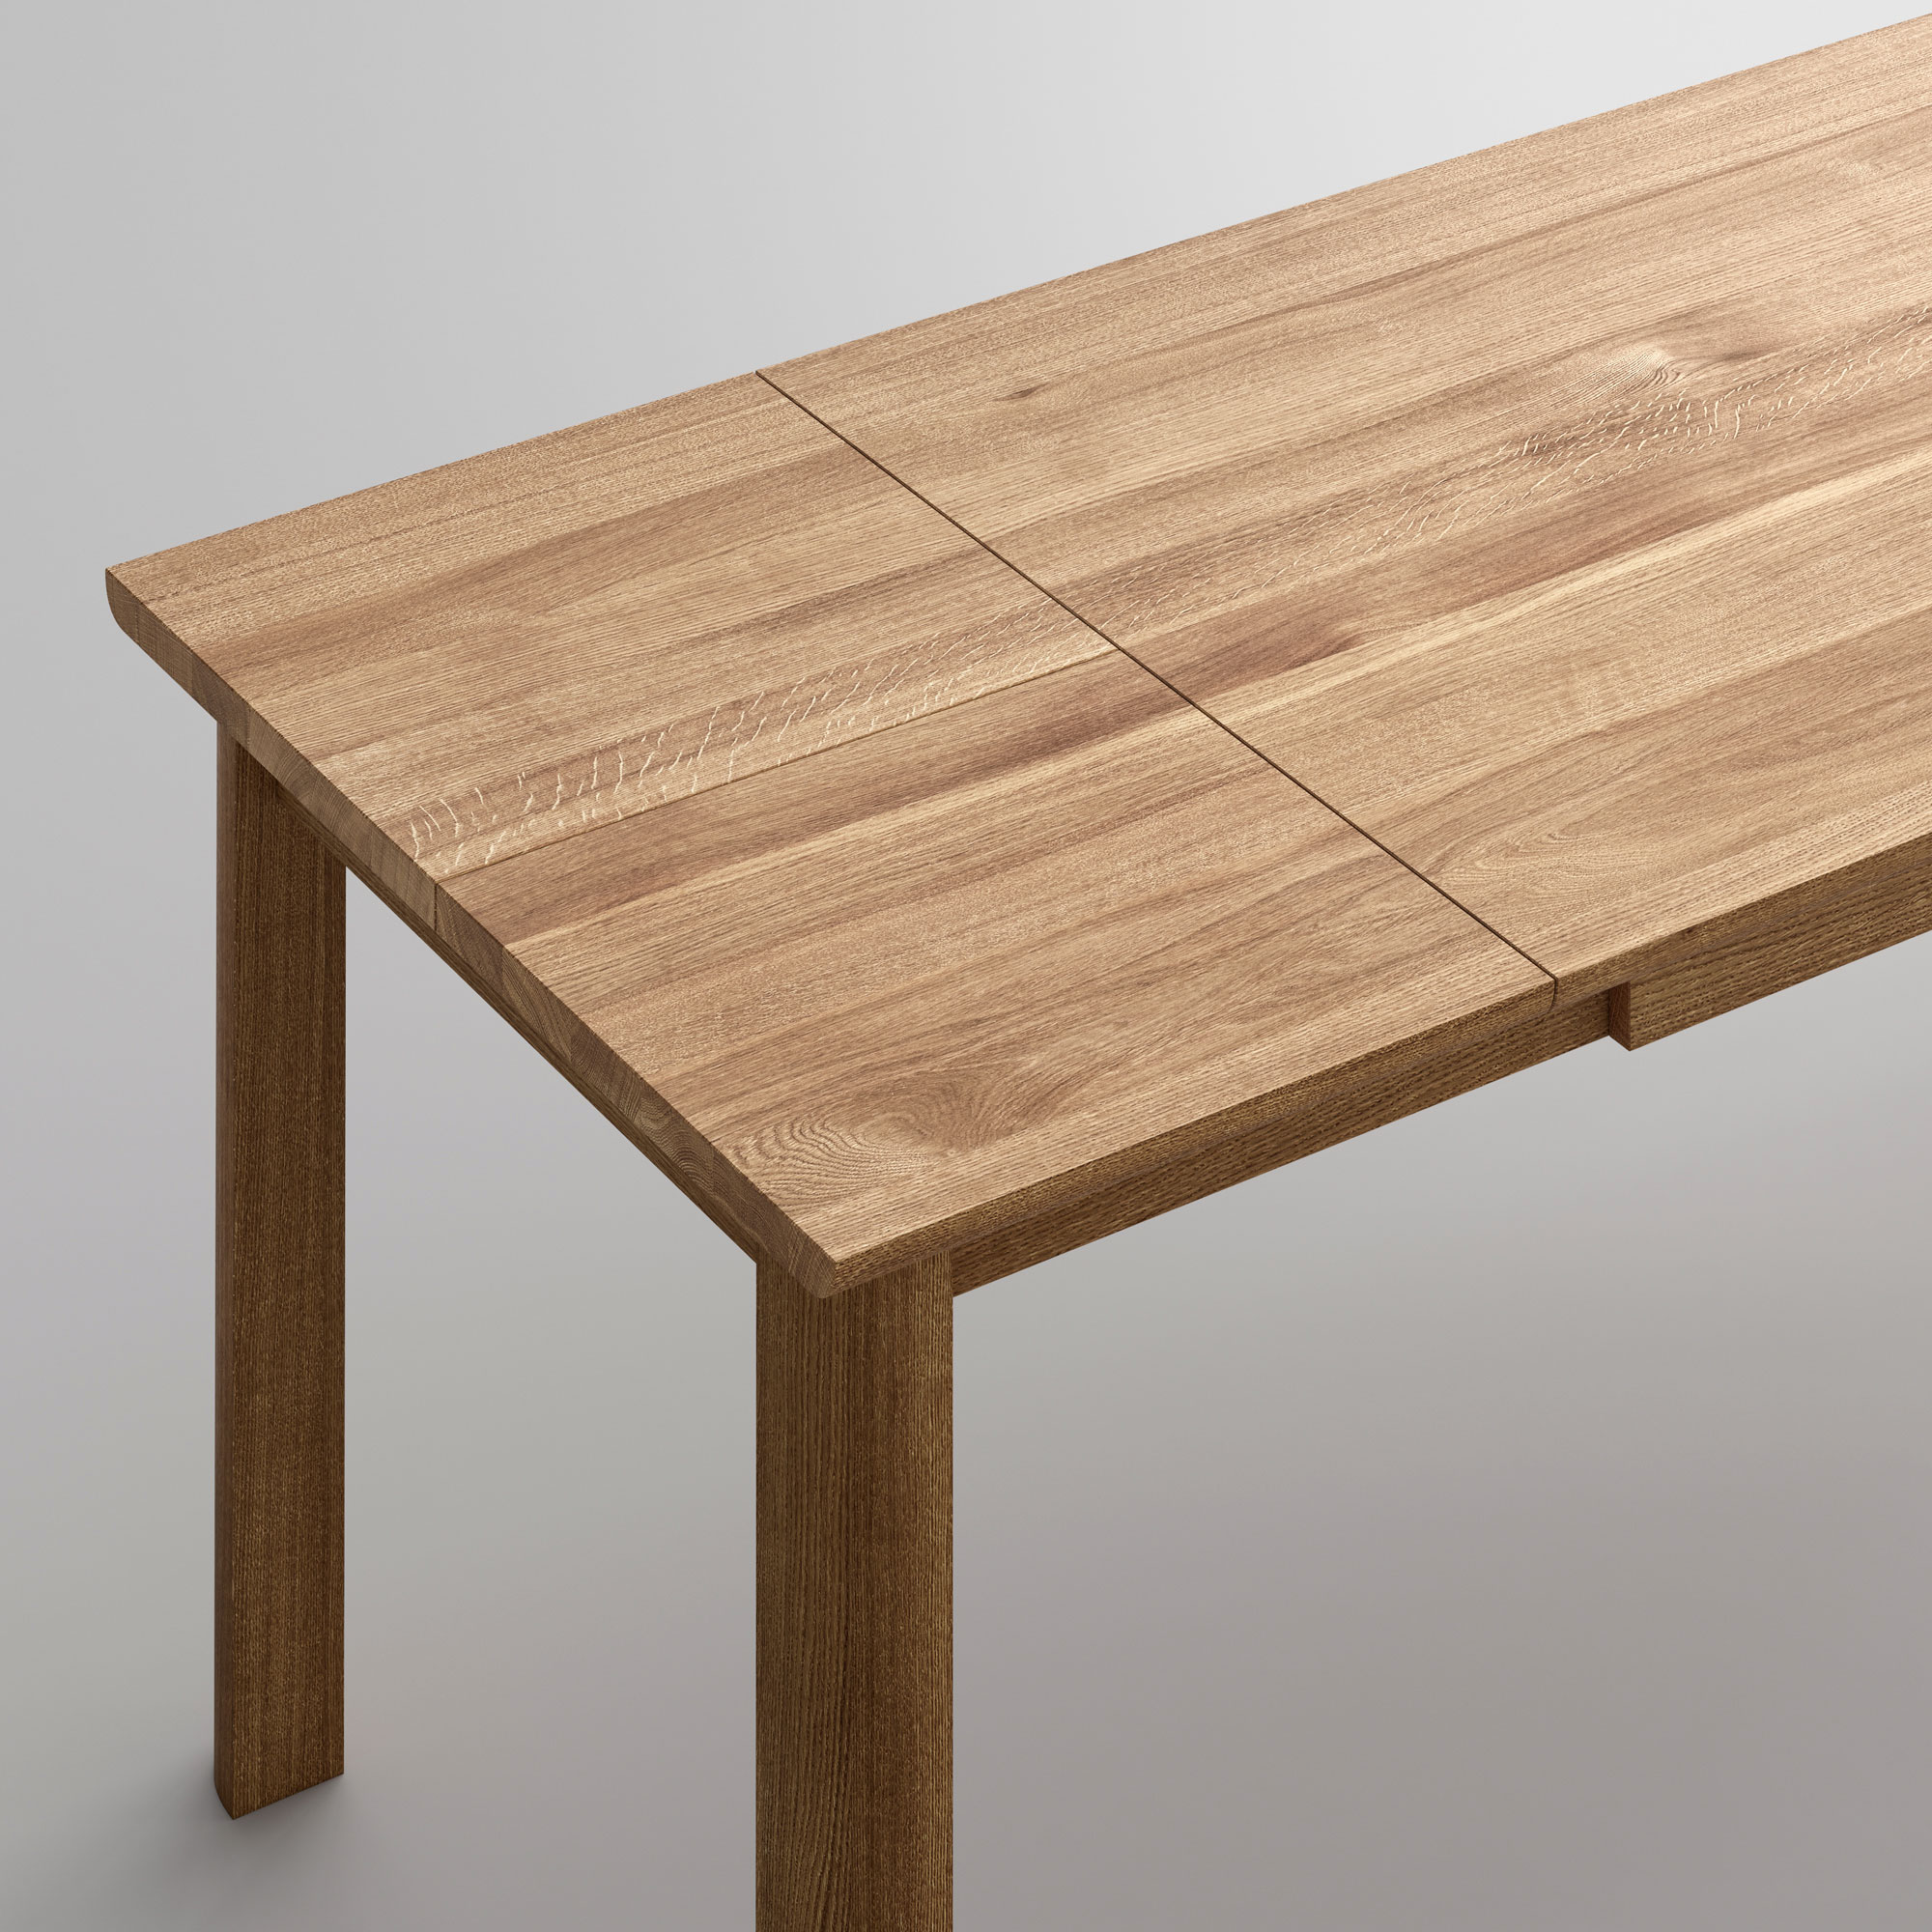 Extendable Dining Table VIVUS BUTTERFLY Cam4-SP1 custom made in solid wood by vitamin design